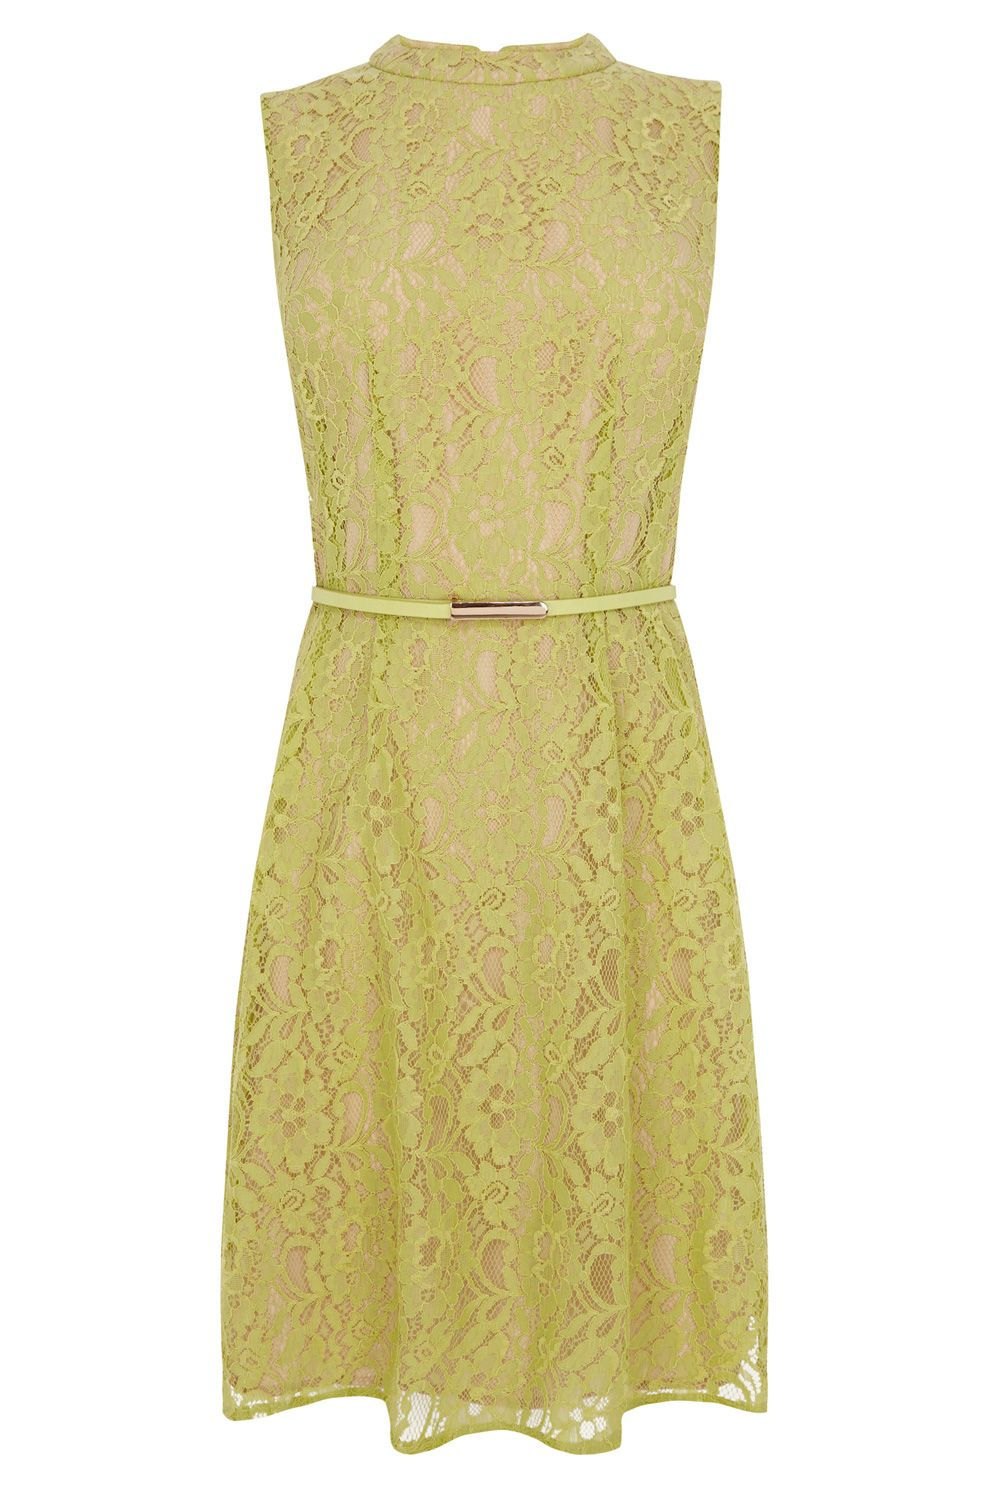 Lace adonia high neck dress